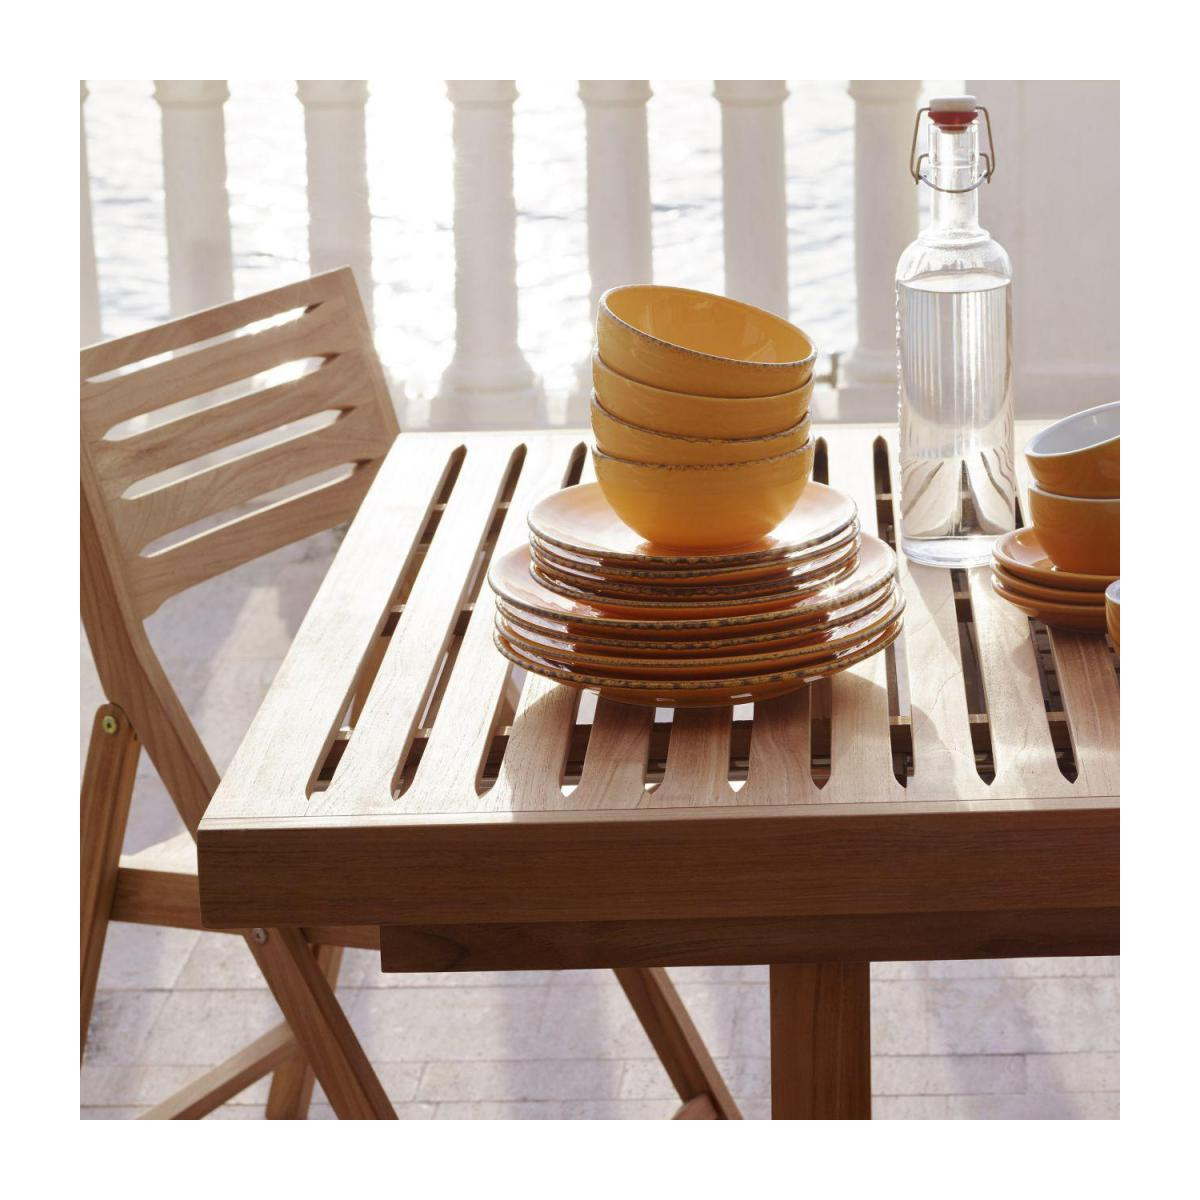 Teak extendible garden table n°10